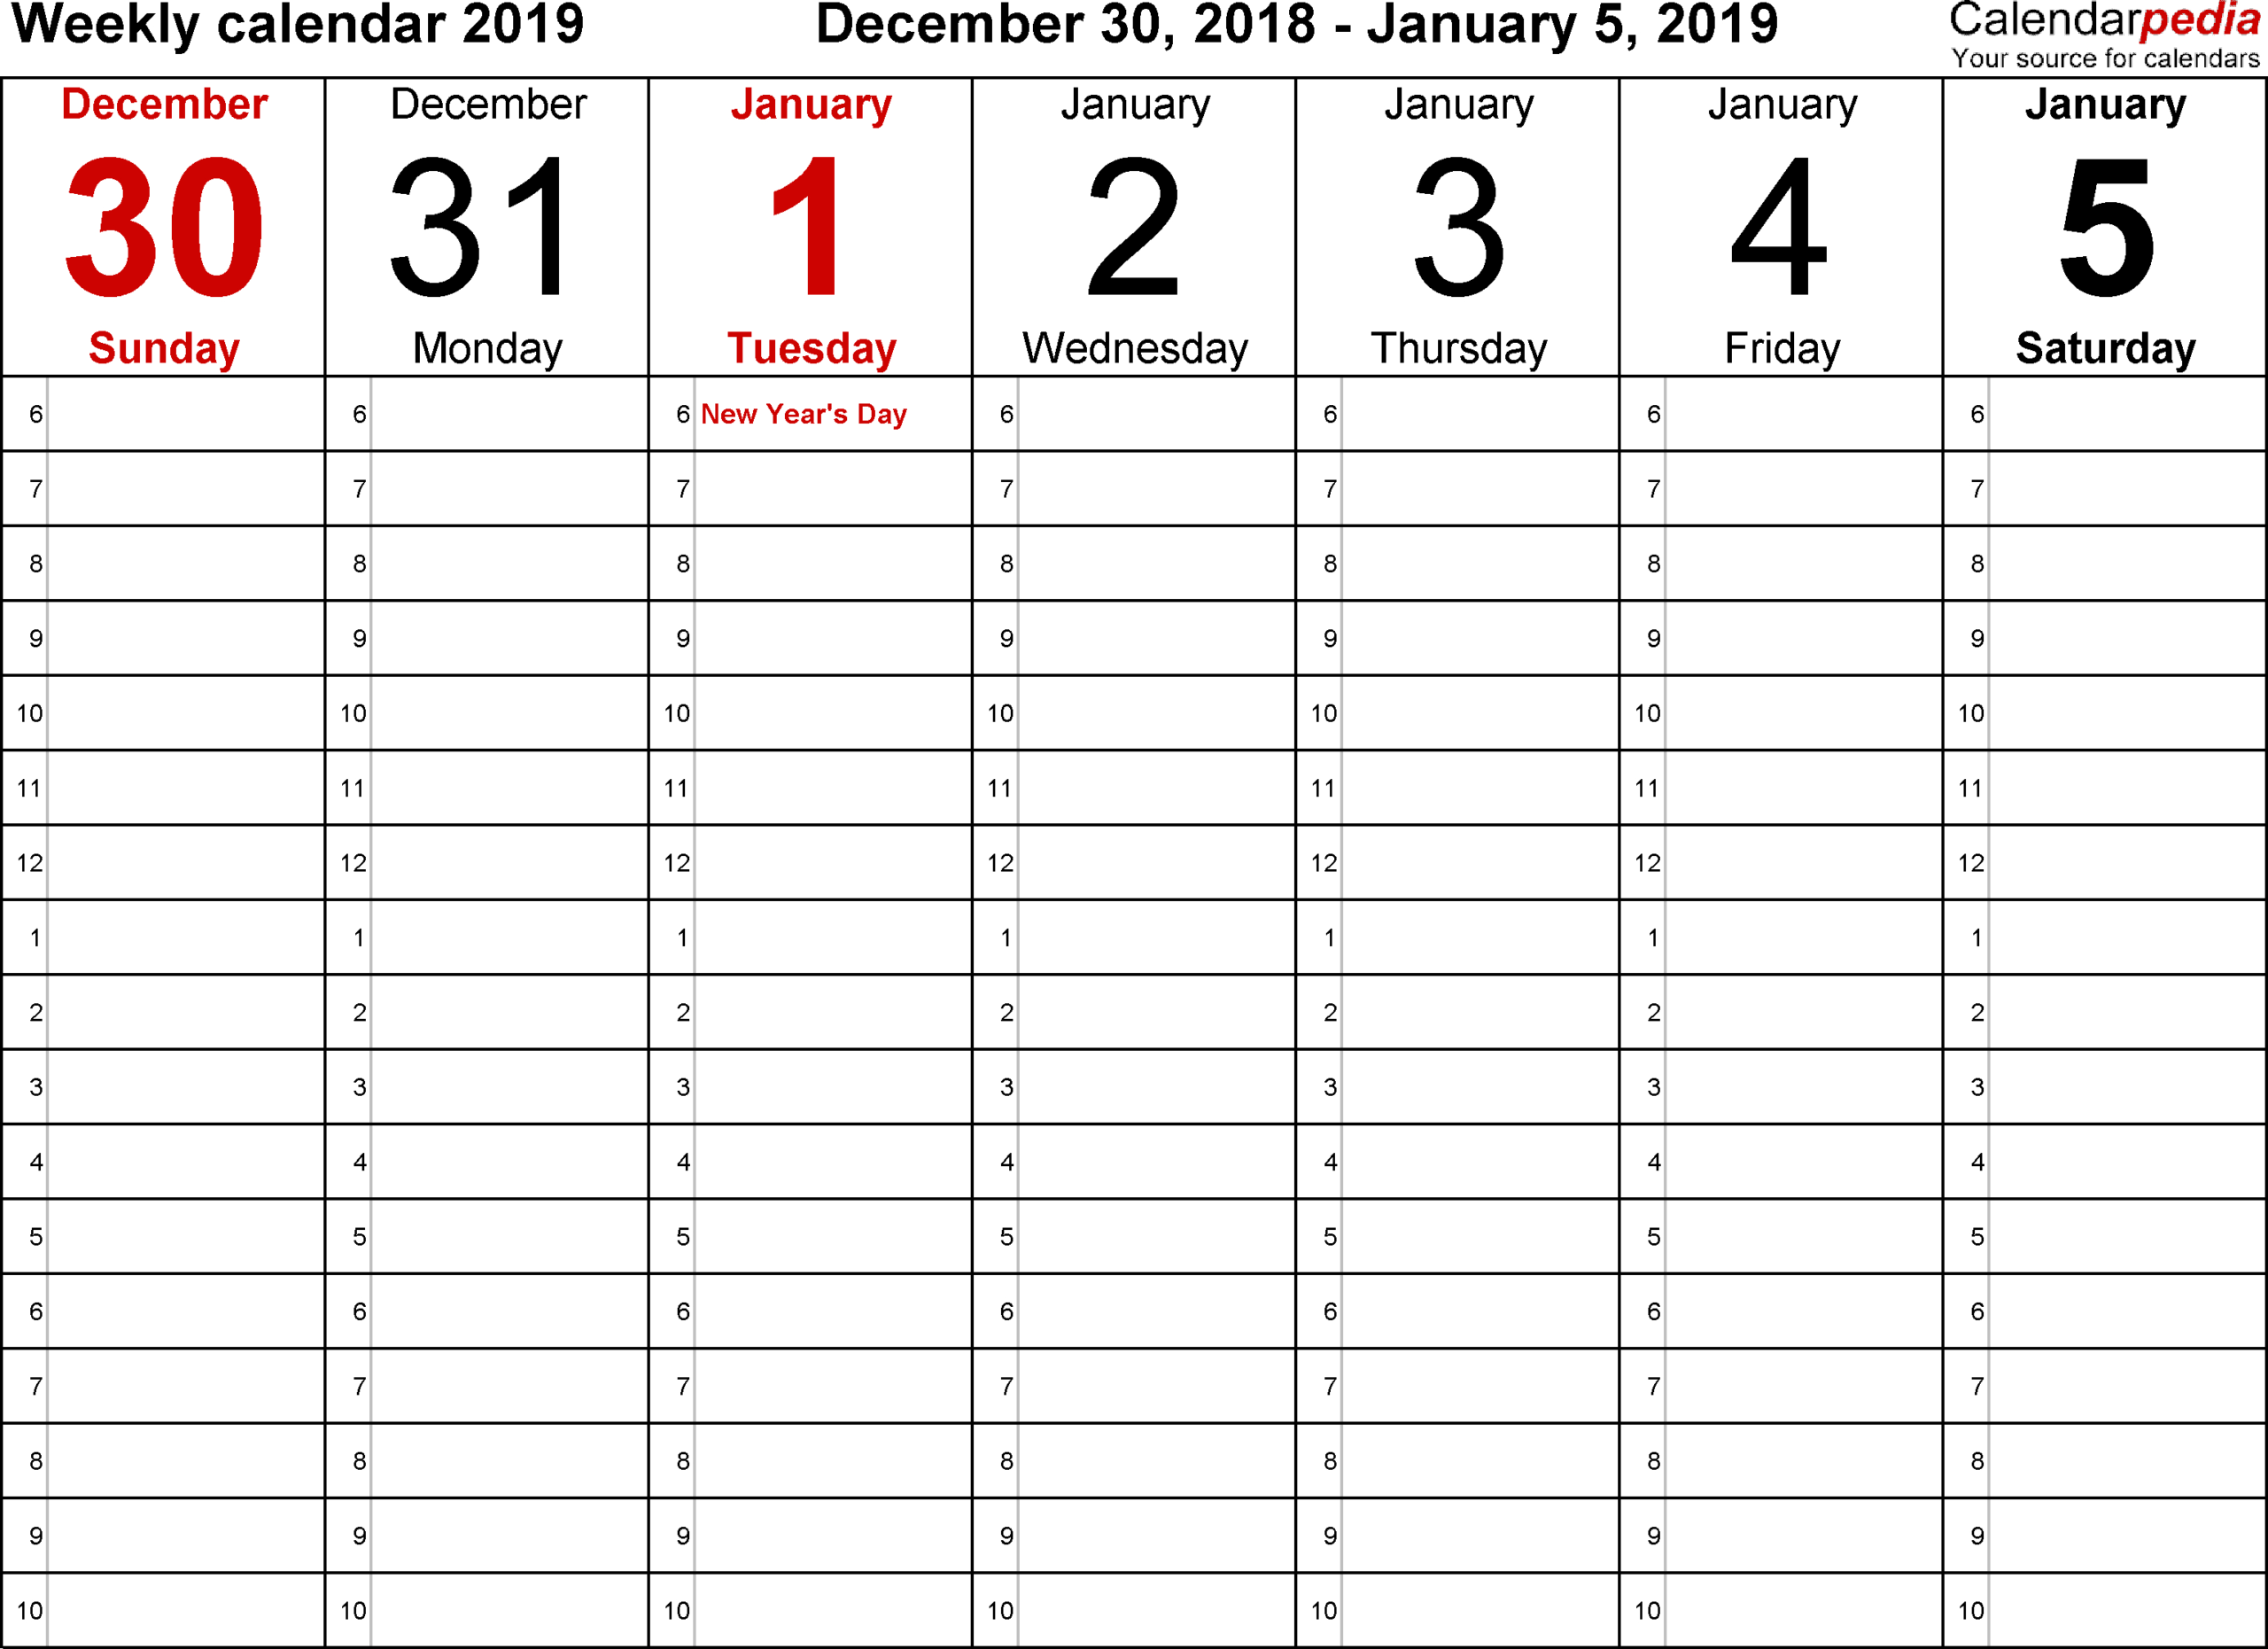 Weekly Calendars 2019 For Excel  12 Free Printable Templates with regard to Time And Action Calendar Excel